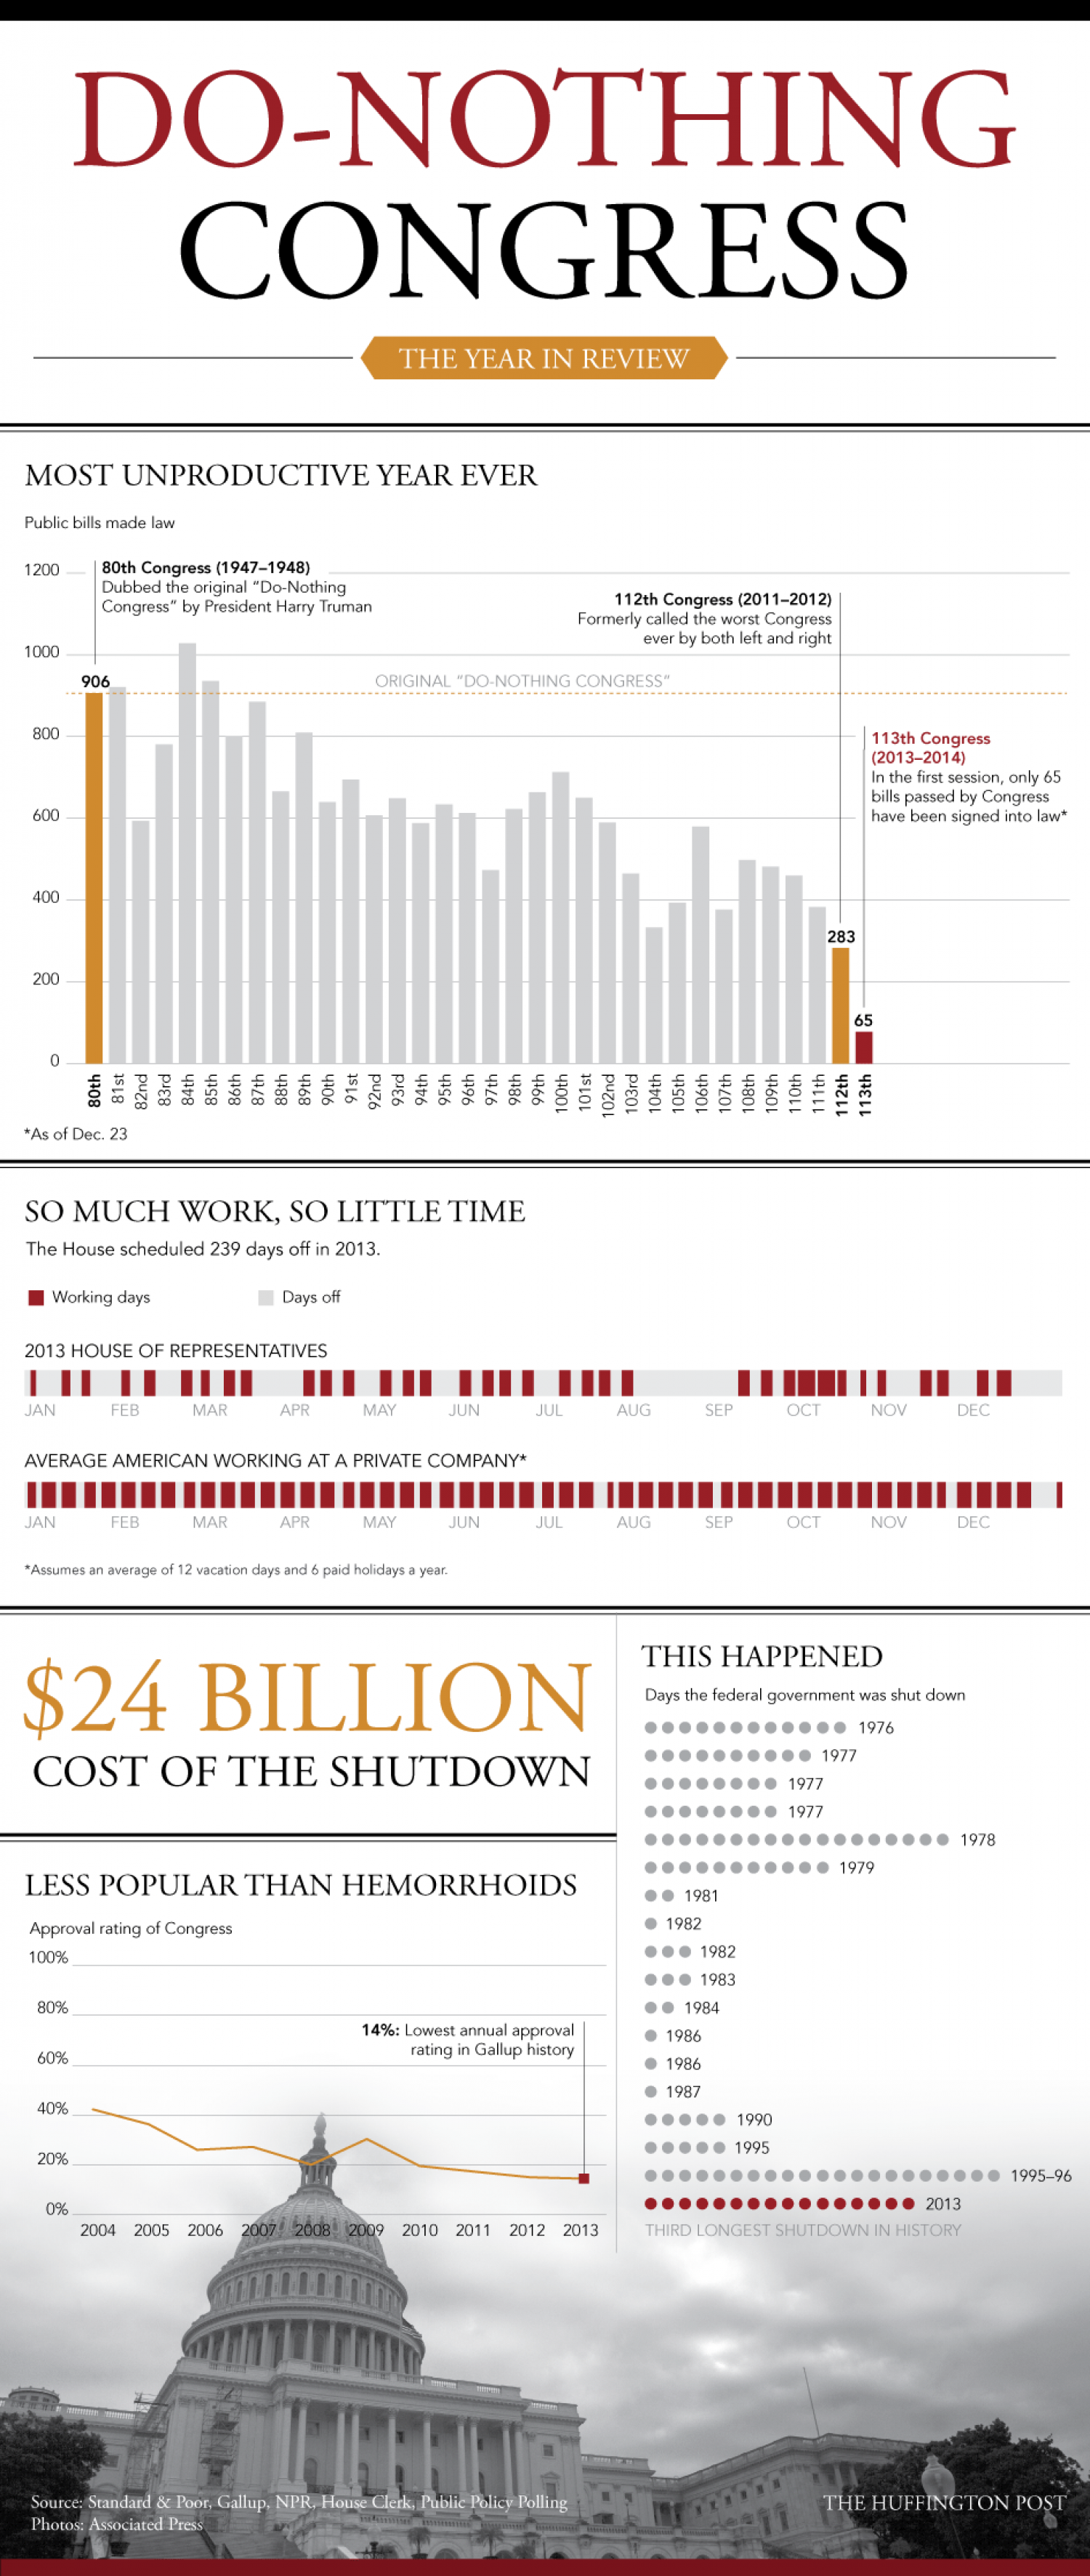 Do-Nothing Congress Infographic